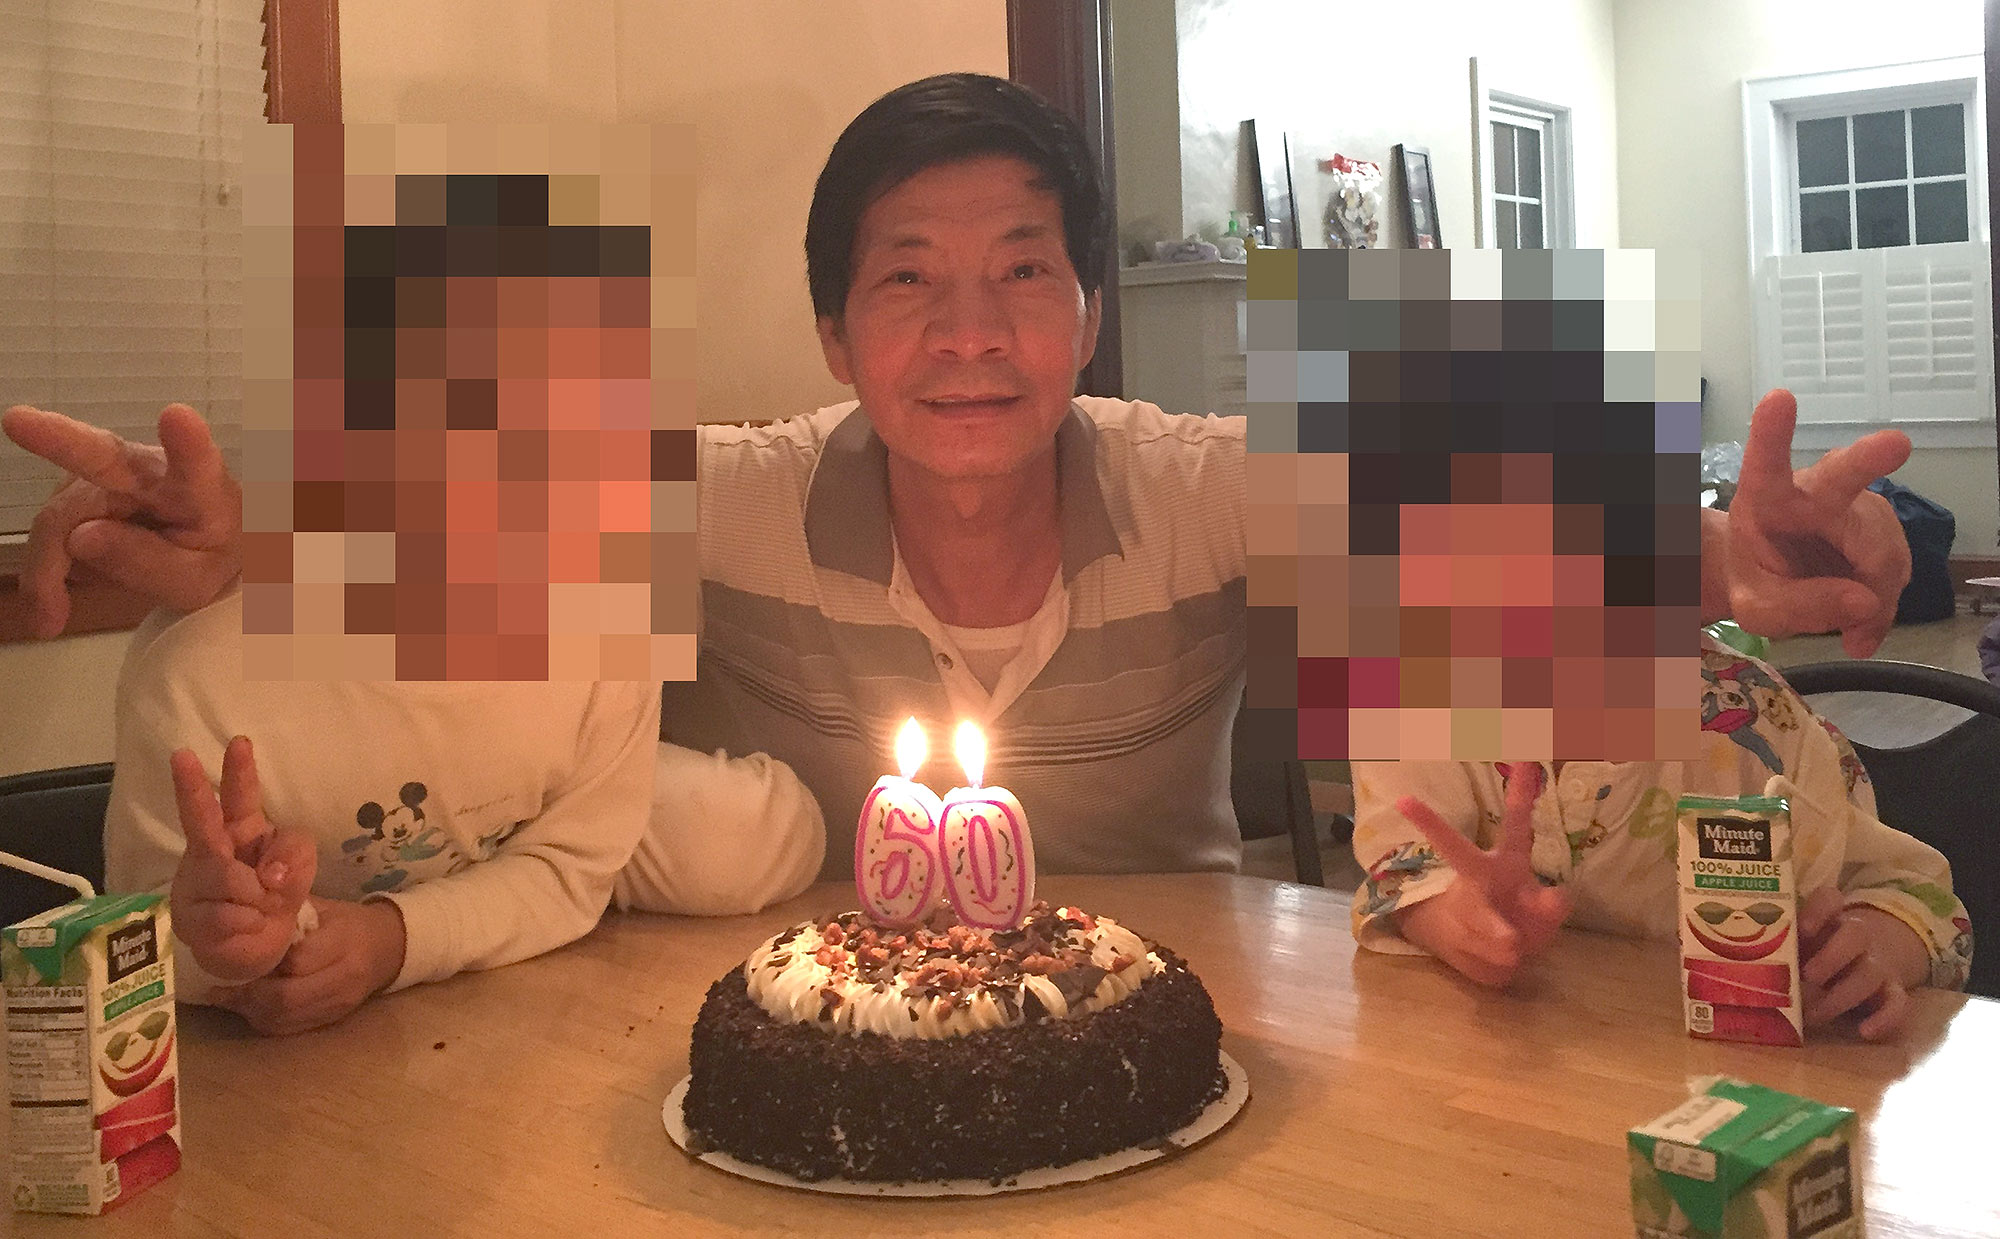 Jiansheng Chen Grandfather Killed by Security Guard in His Own Neighborhood While Playing Pokémon Go